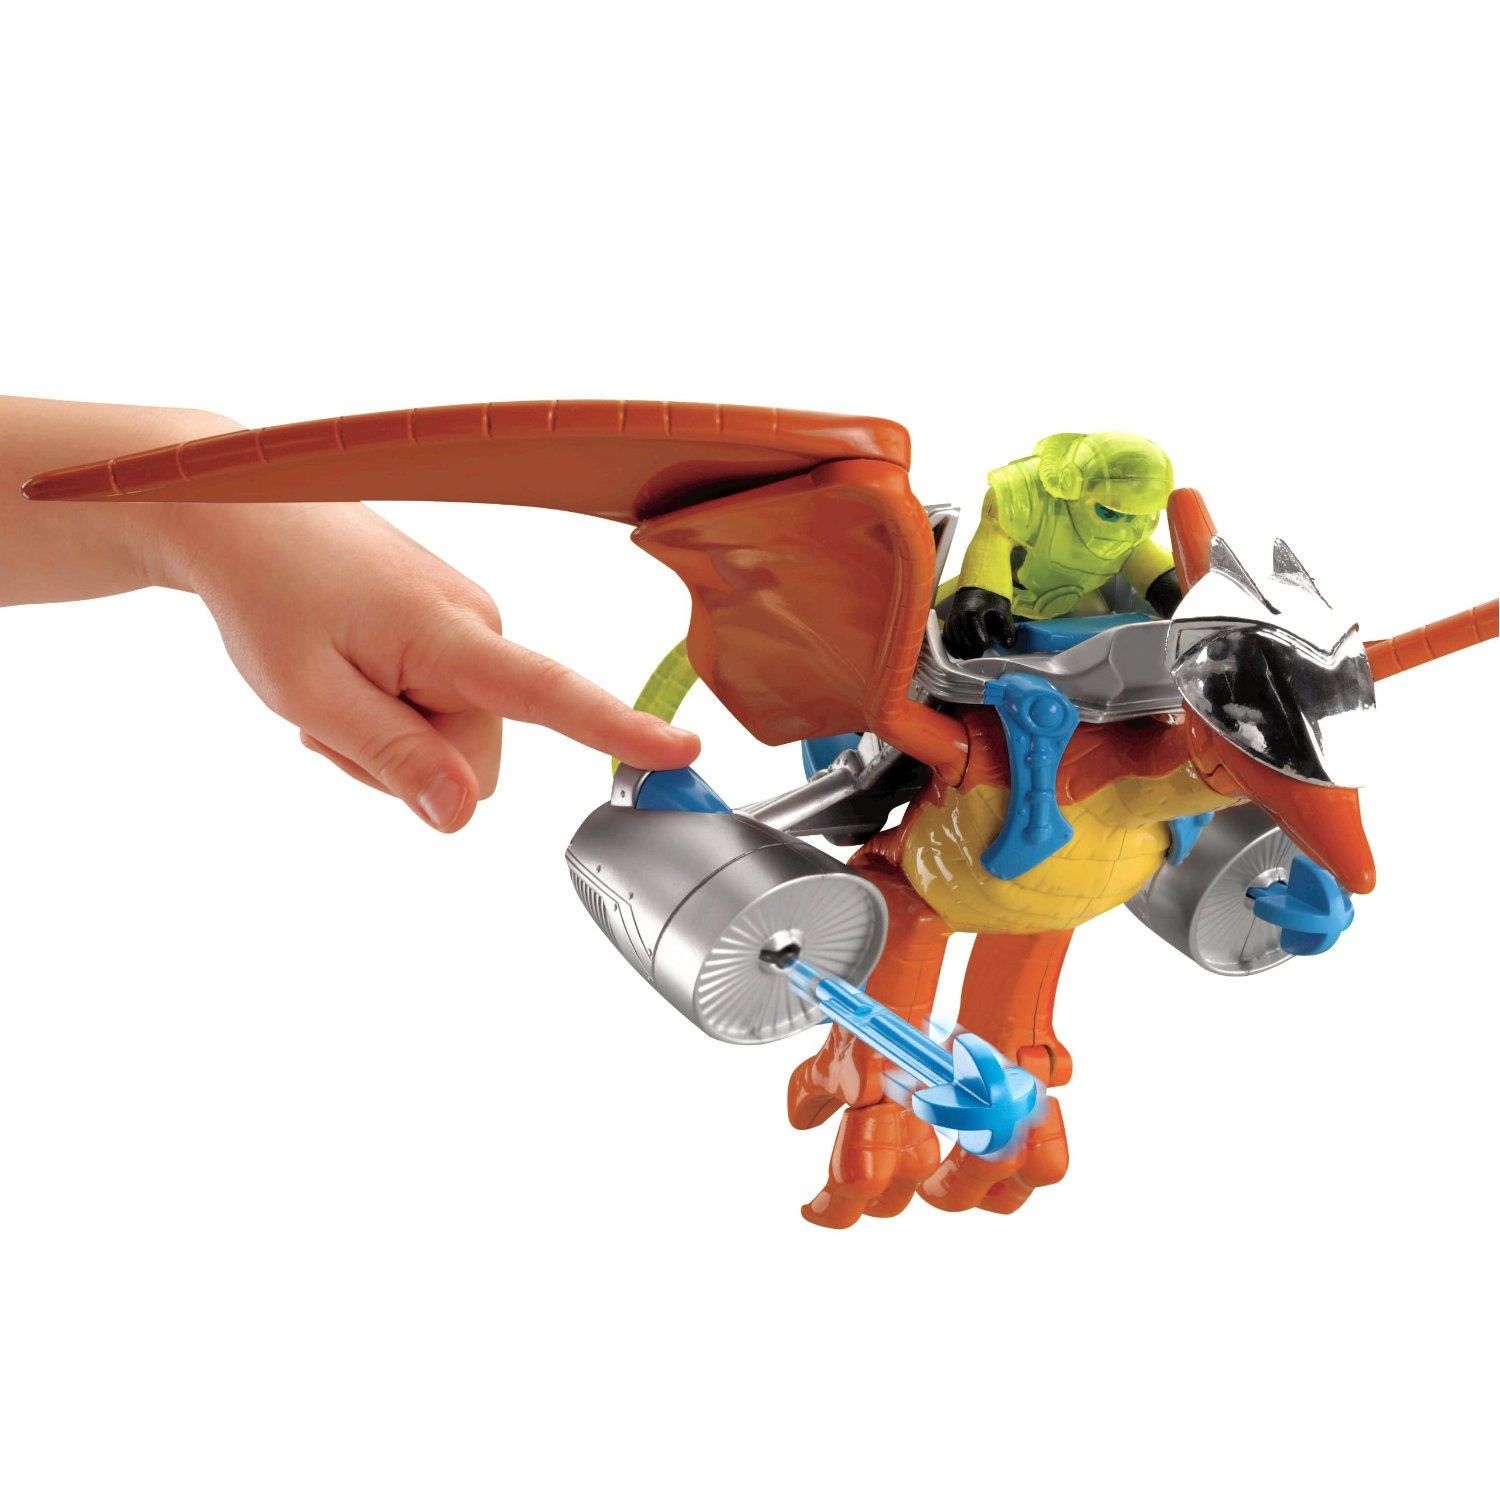 imaginext dinosaur toys - photo #13